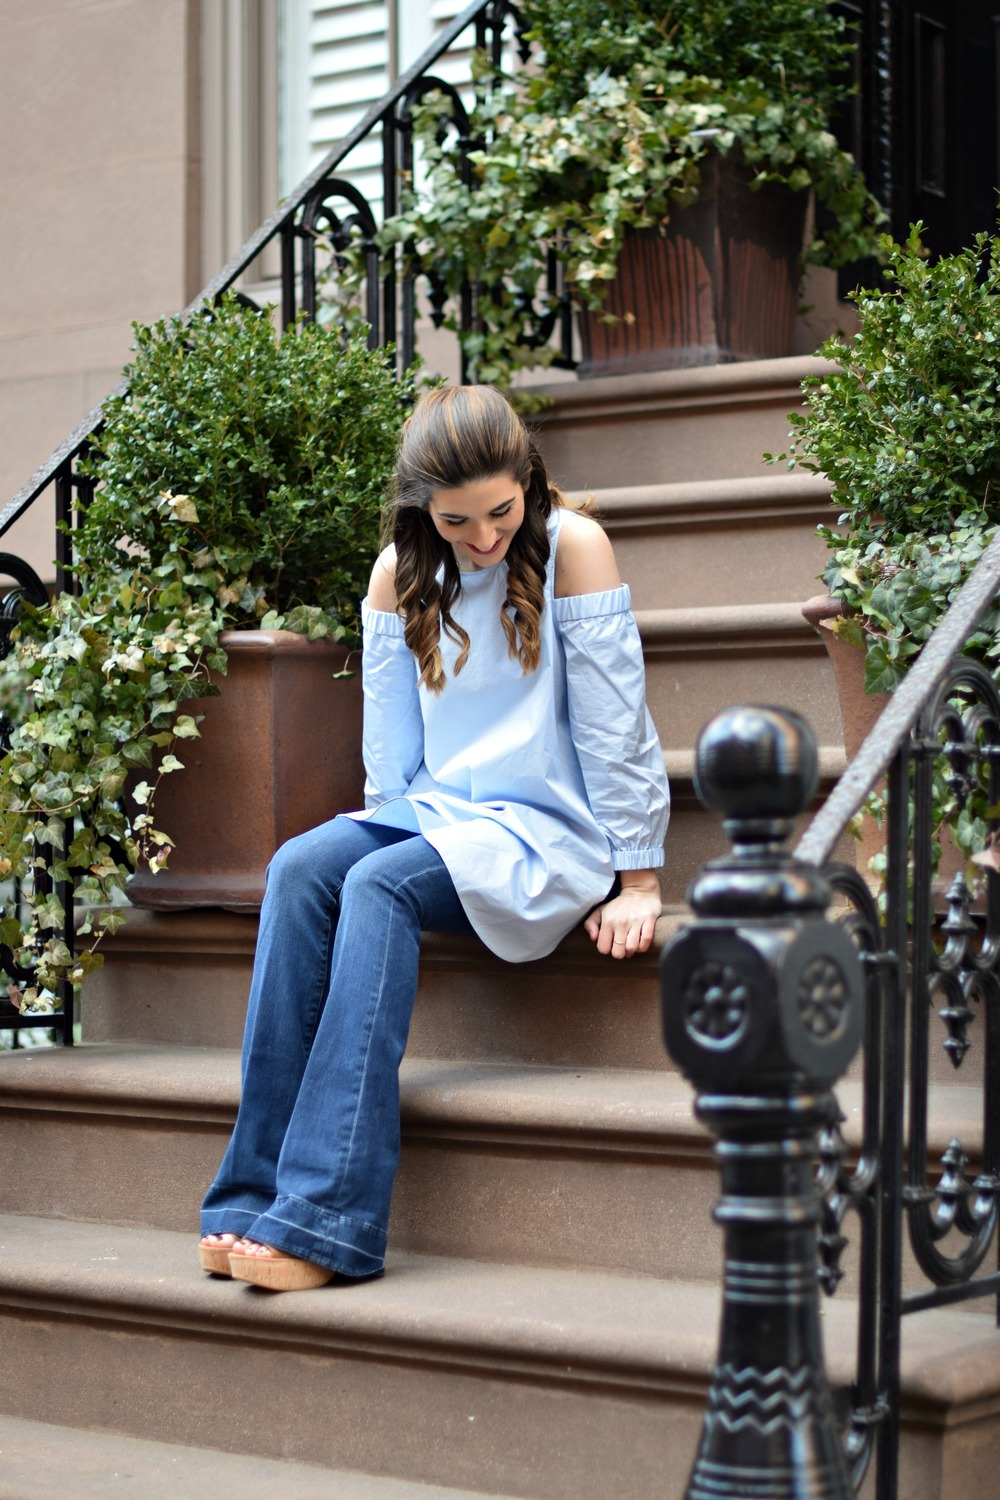 Cold Shoulder Tibi Top Frame Denim Louboutins & Love Fashion Blog Esther Santer NYC Fashion Blogger Jeans Designer Outfit OOTD Trunk Club Stylist Online Shopping Dolce Vita Platform Sandals Girl Women Shoes Inspo Buy Pretty Inspiration Clutch Preppy.jpg